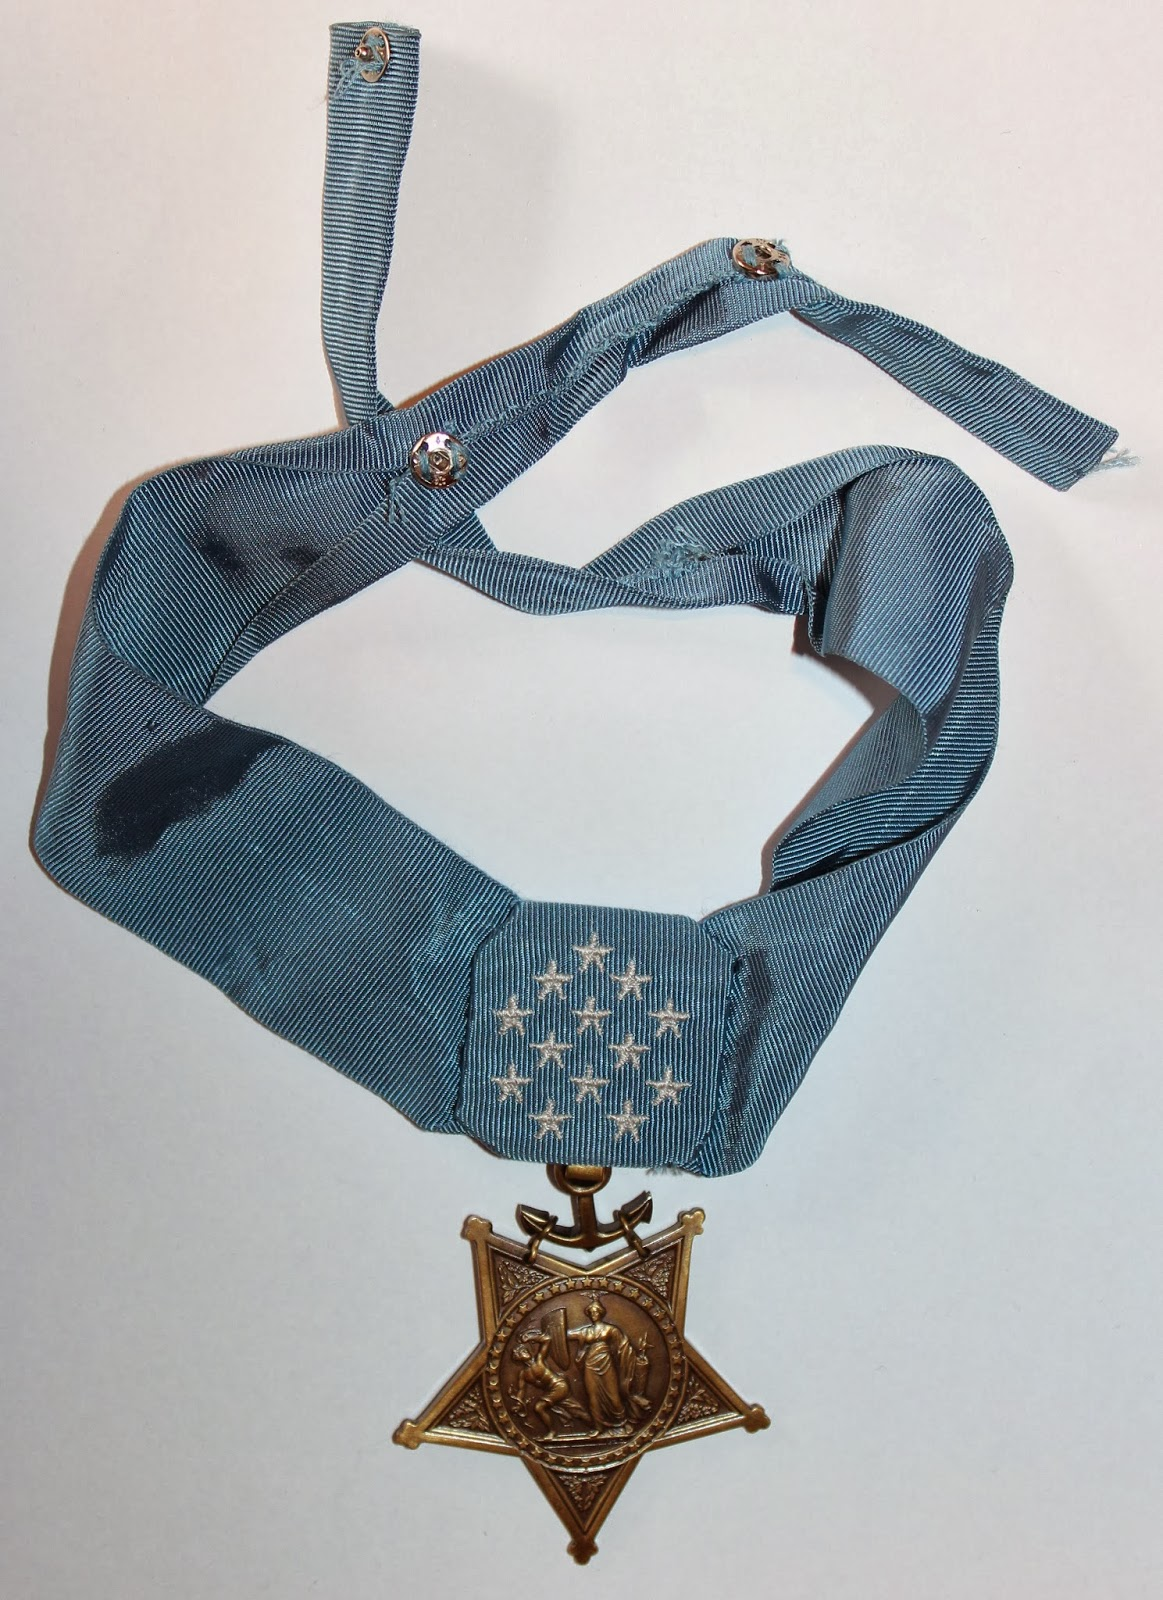 Archie van Winkle Named Medal of Honor